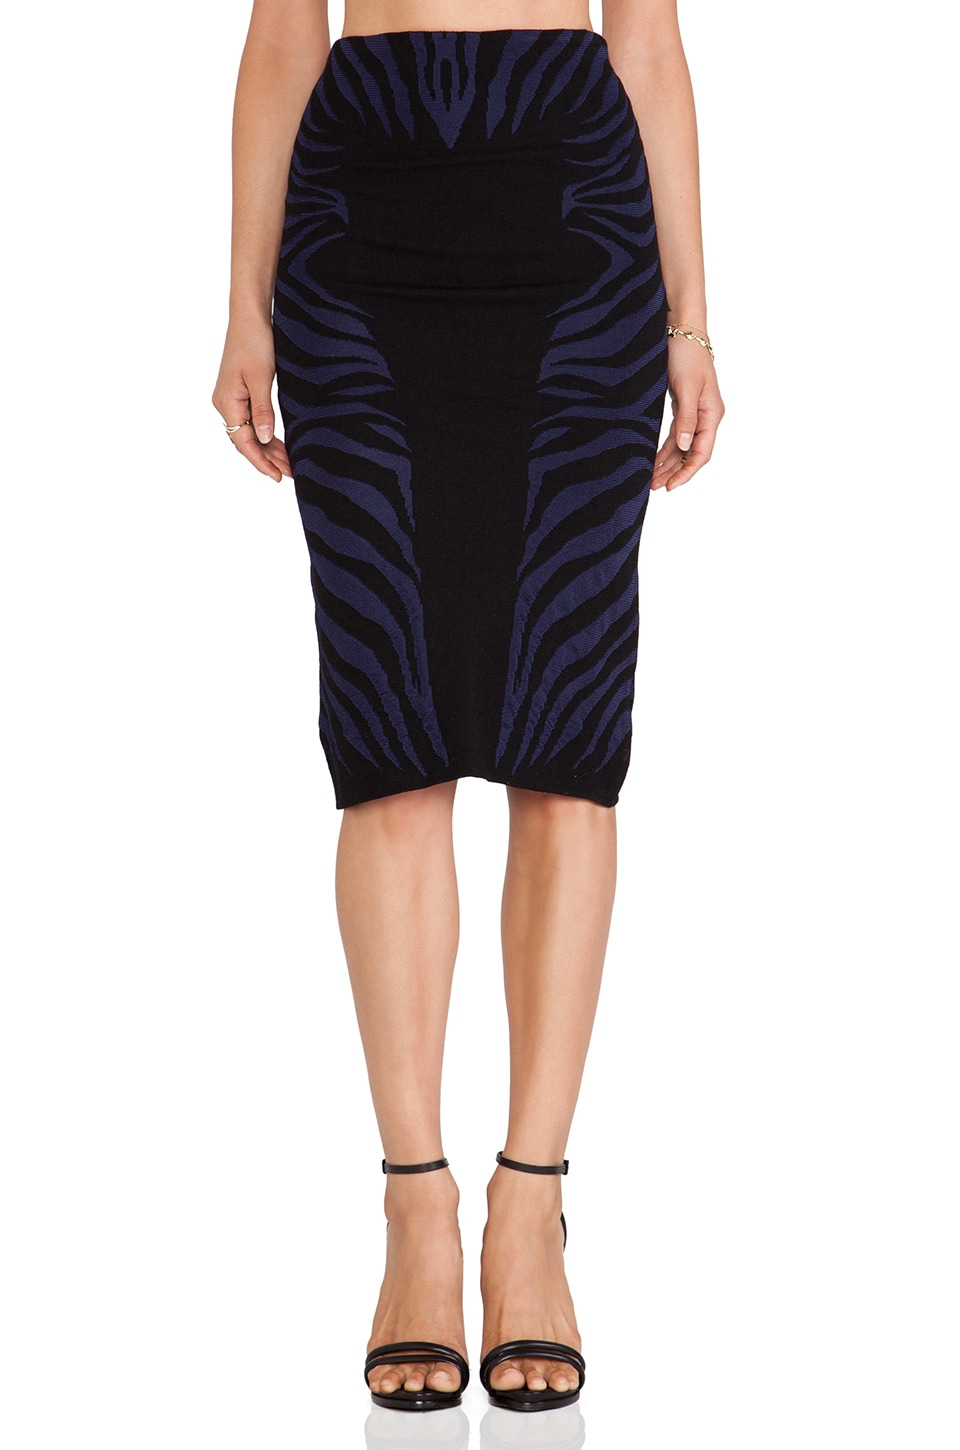 RVN Zebra Textured Jacquard Midi Skirt in Black & Navy